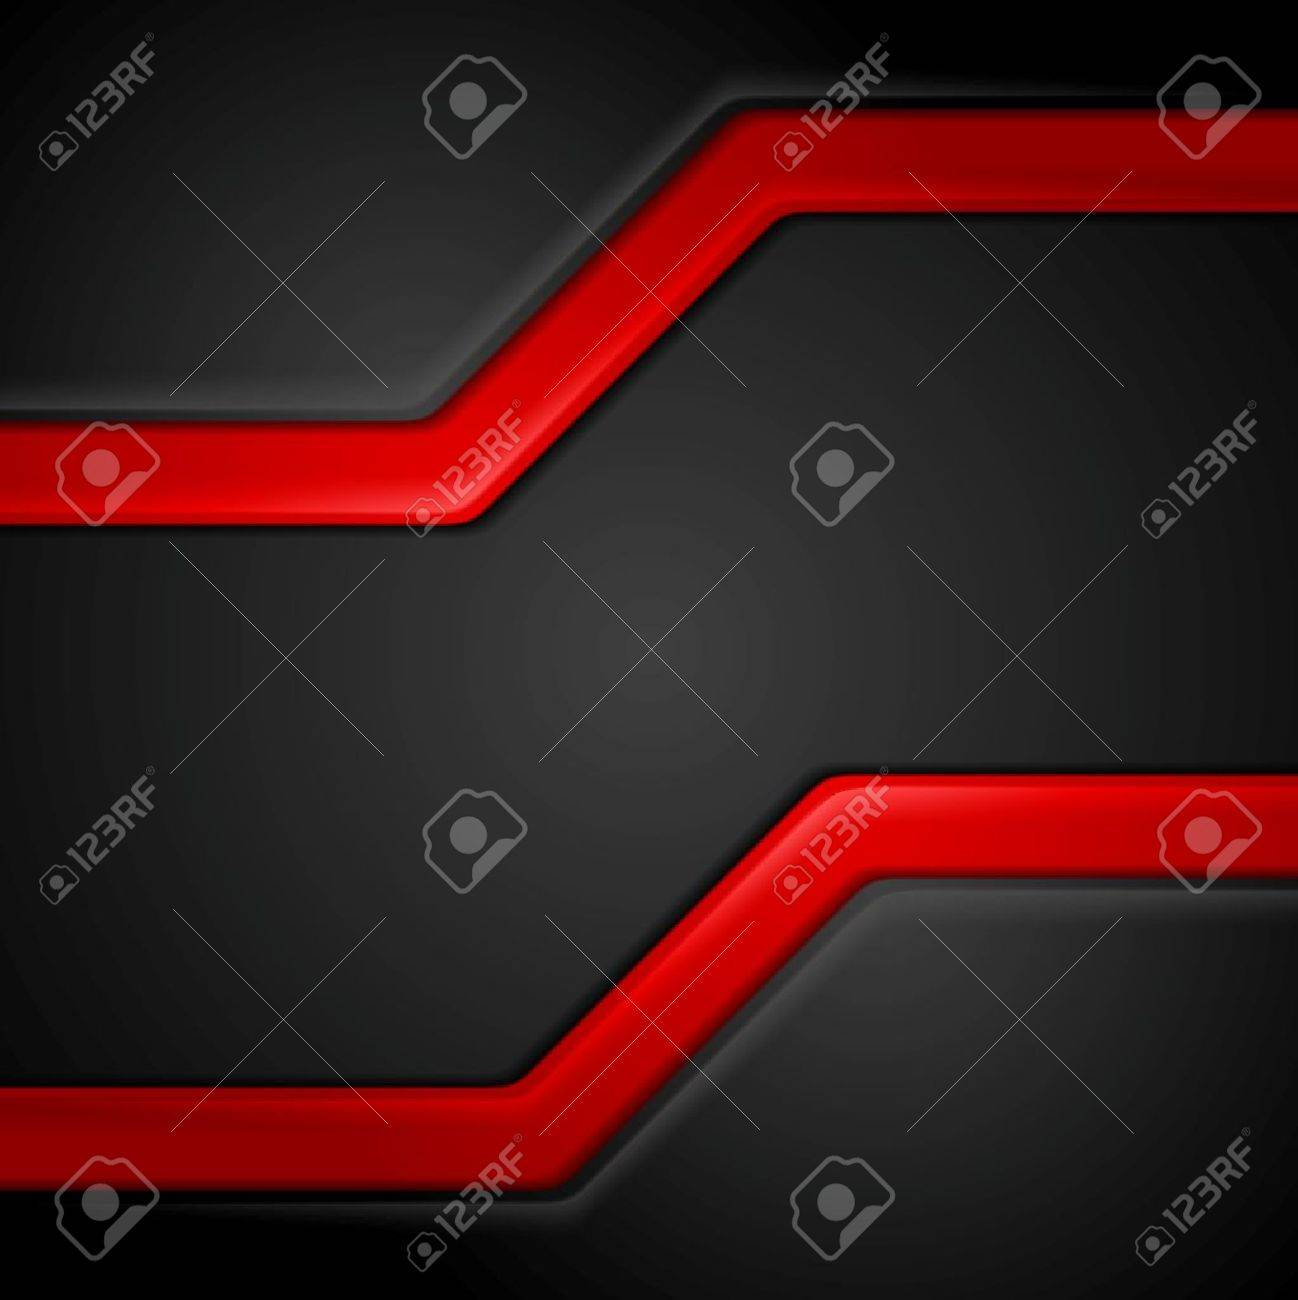 Abstract contrast black red tech background. Vector corporate graphic design - 55687024